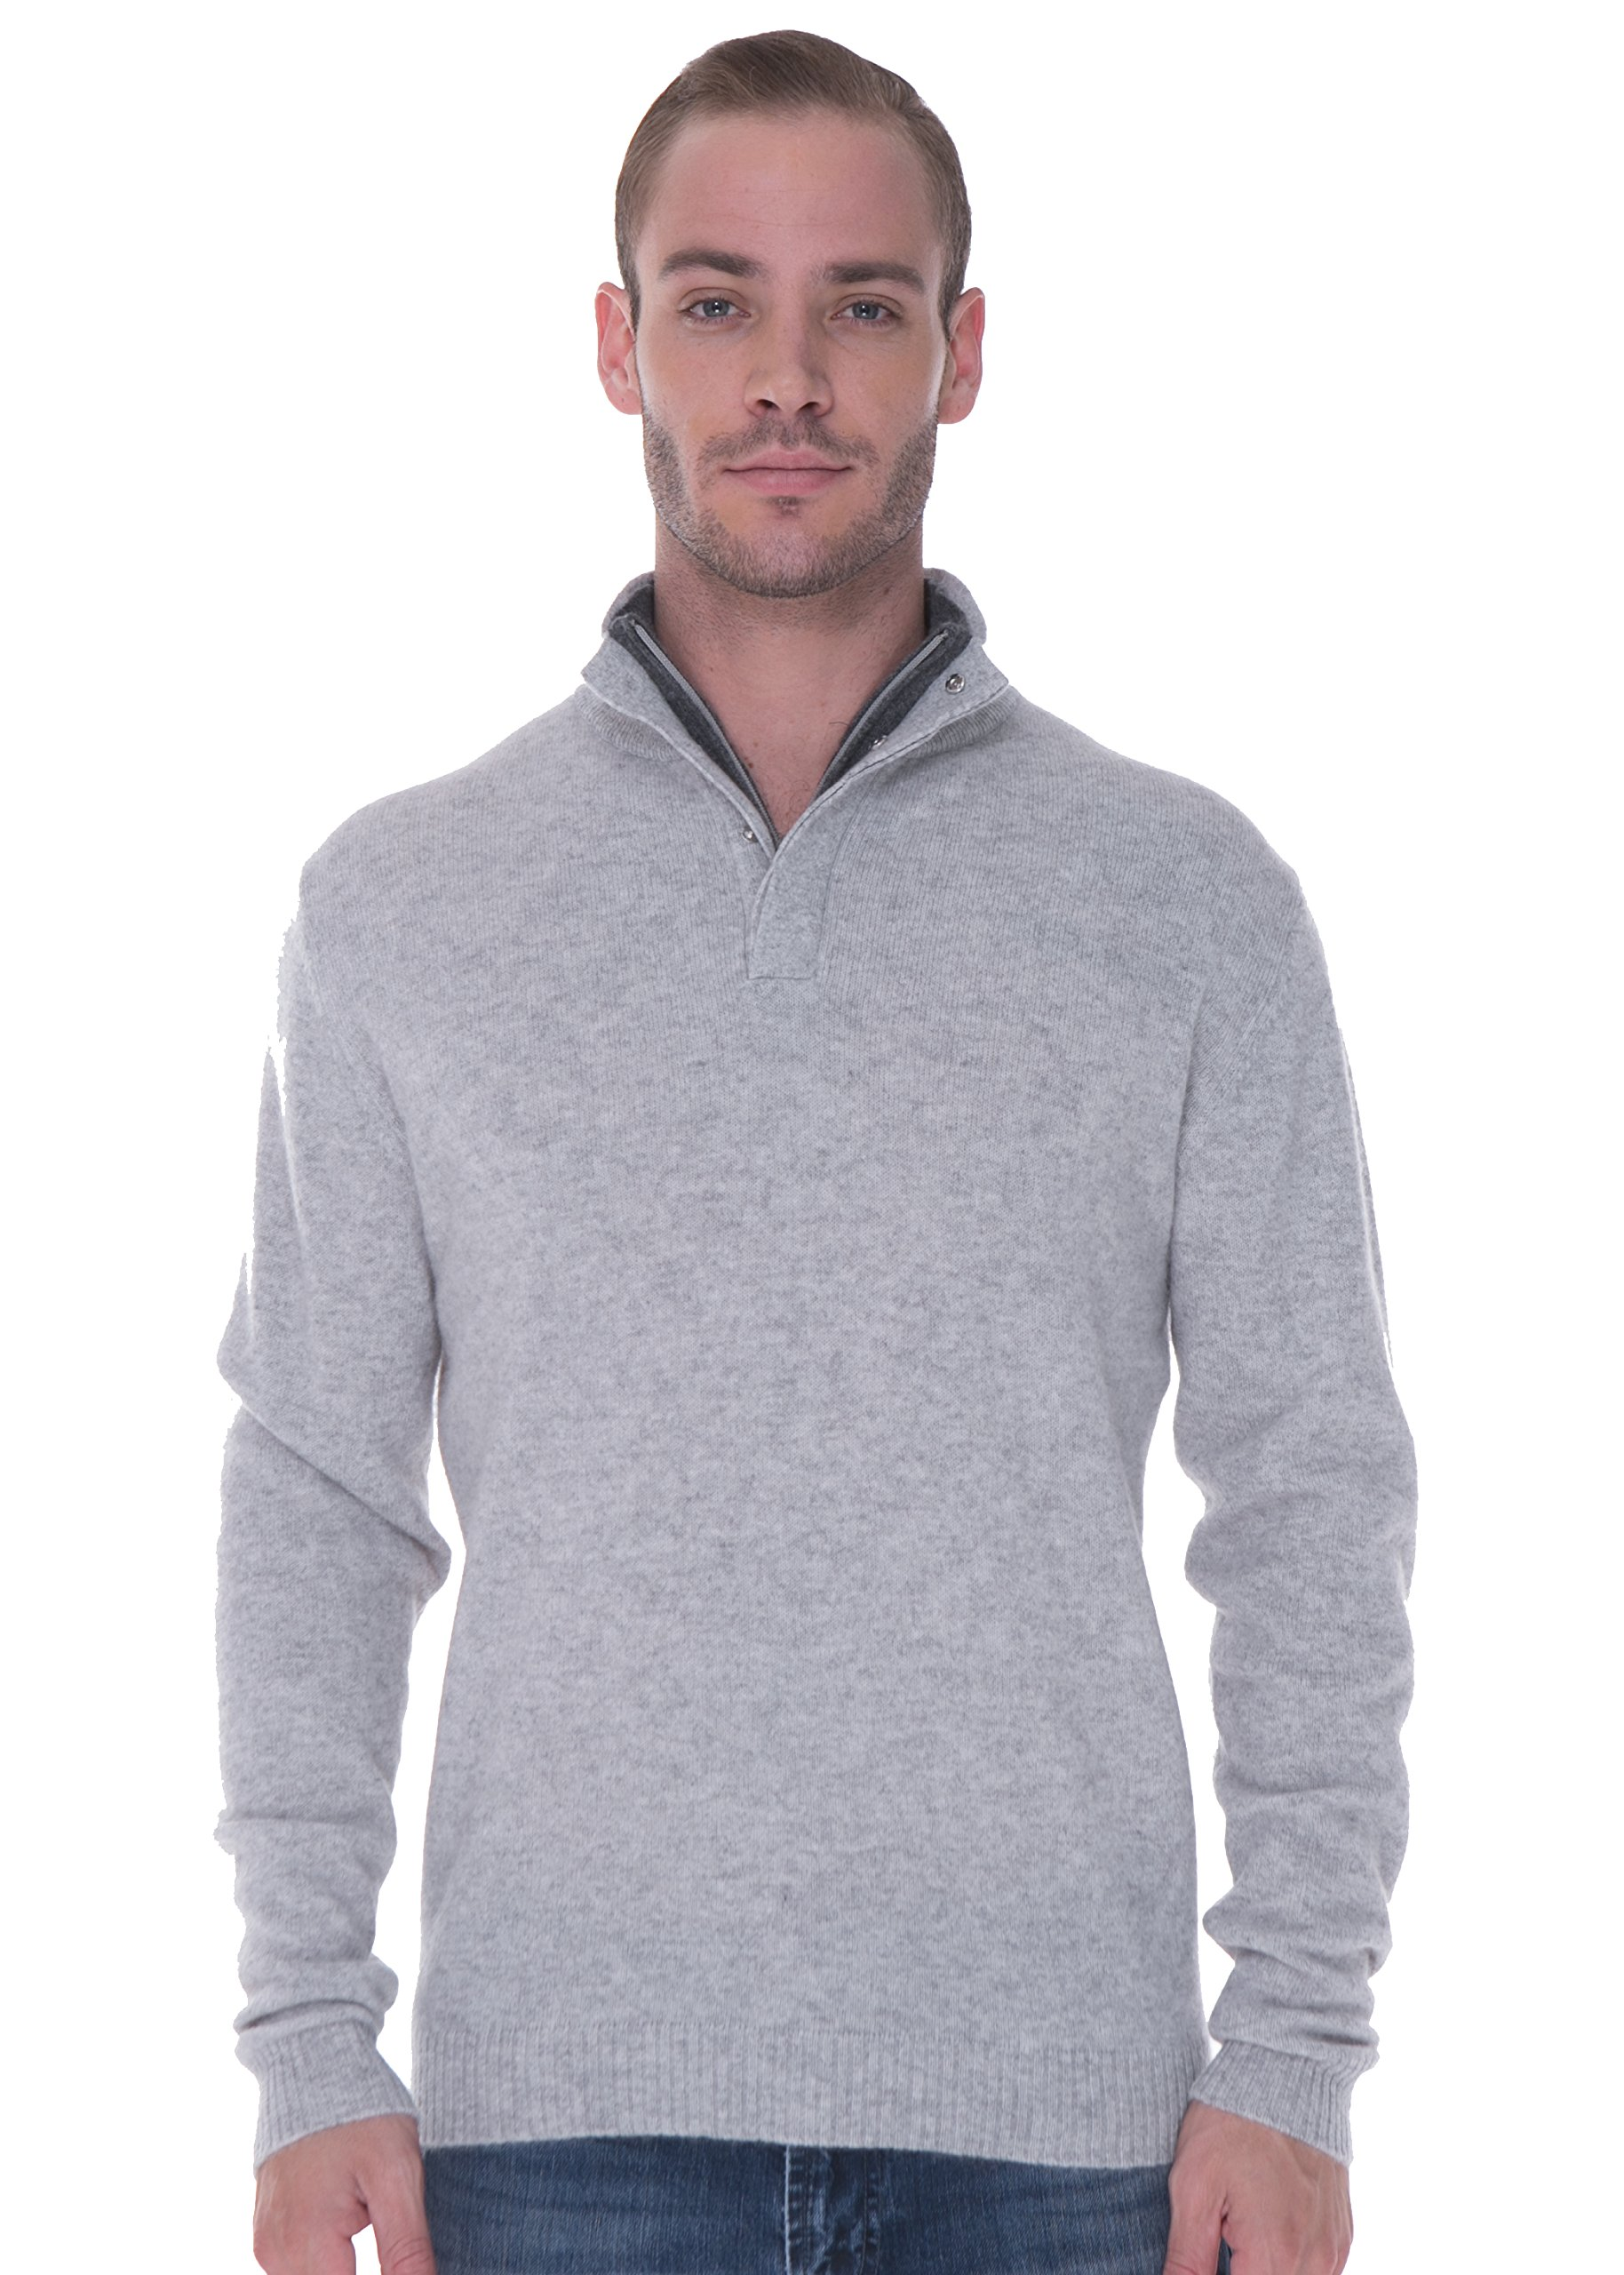 LEBAC Men's 100% Cashmere Sweater Quarter Zip Pullover With Elbow Patches